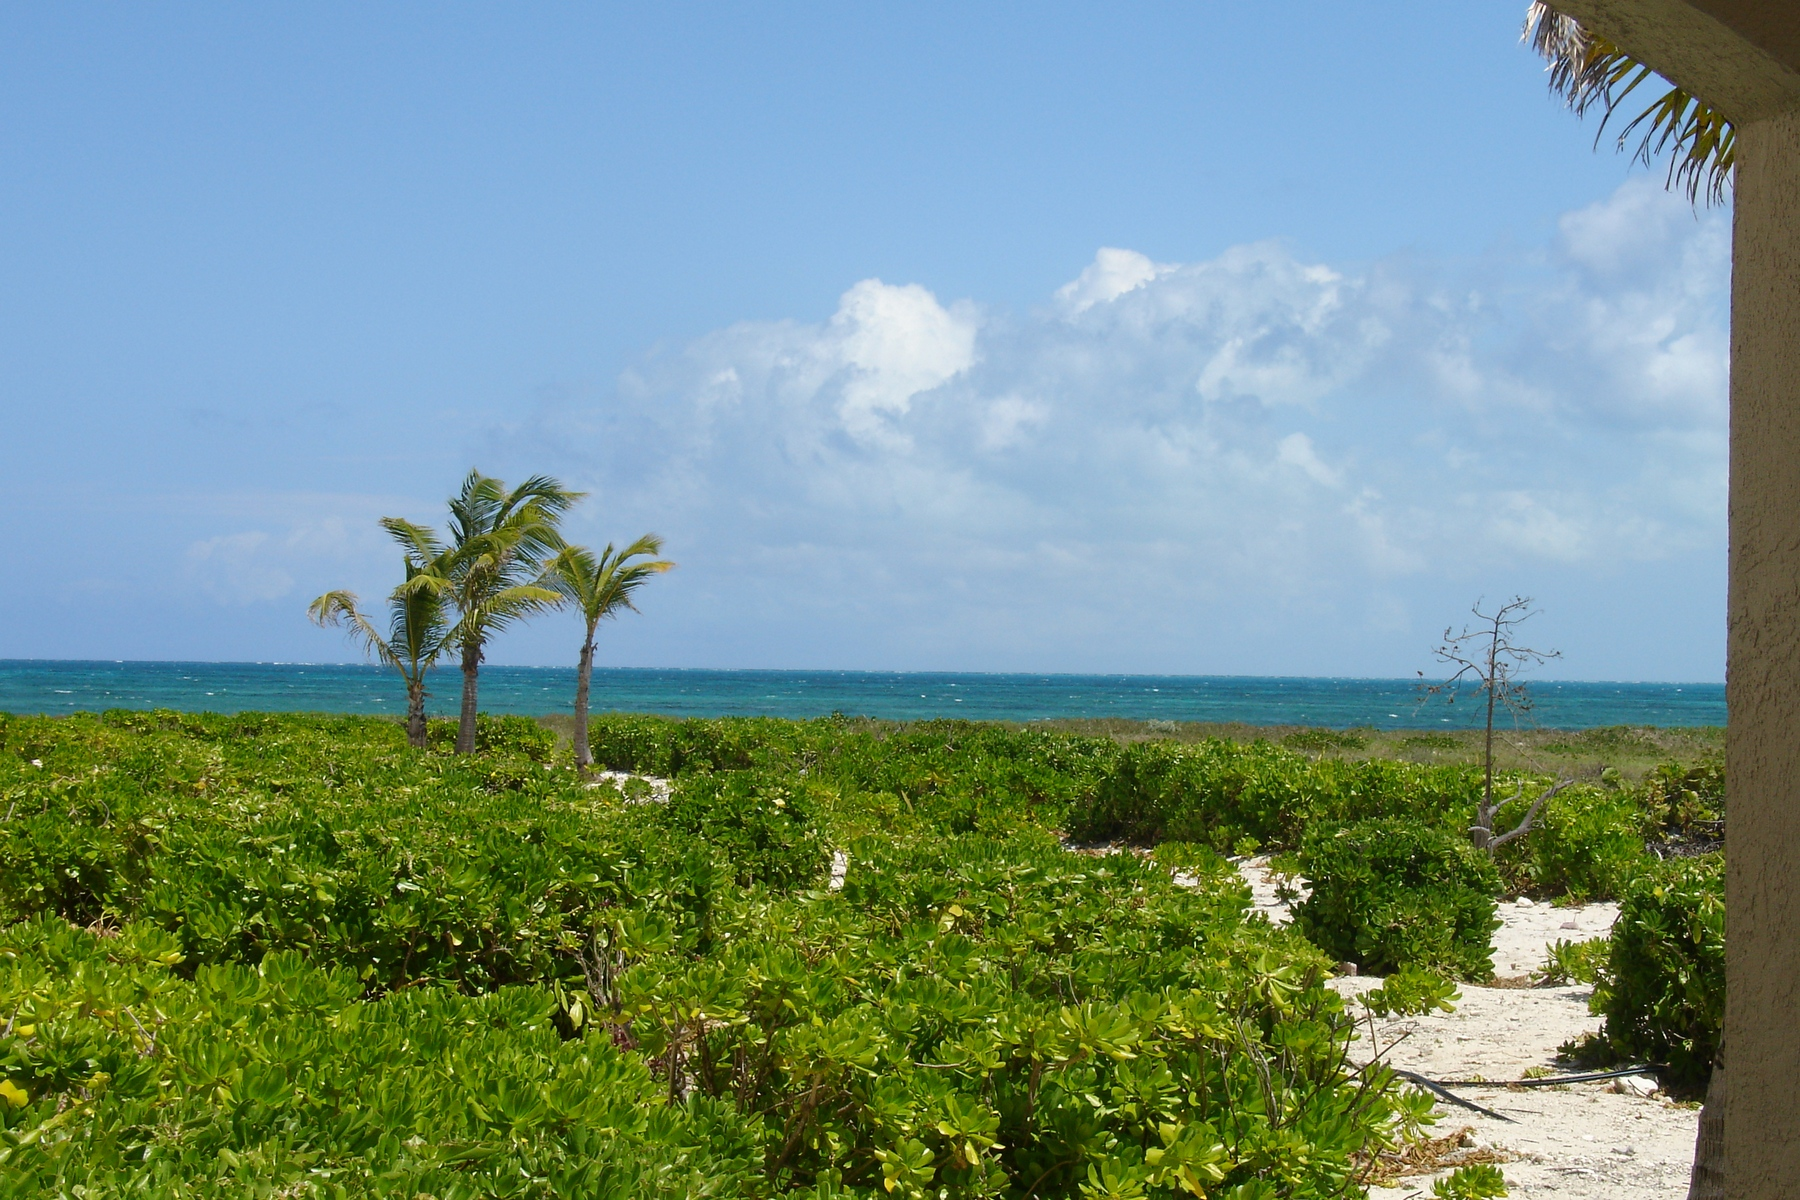 Apartamento en venta en/de Beachfront, North West Point,  ,TCI BWI  , Islas Turcas y Caicos